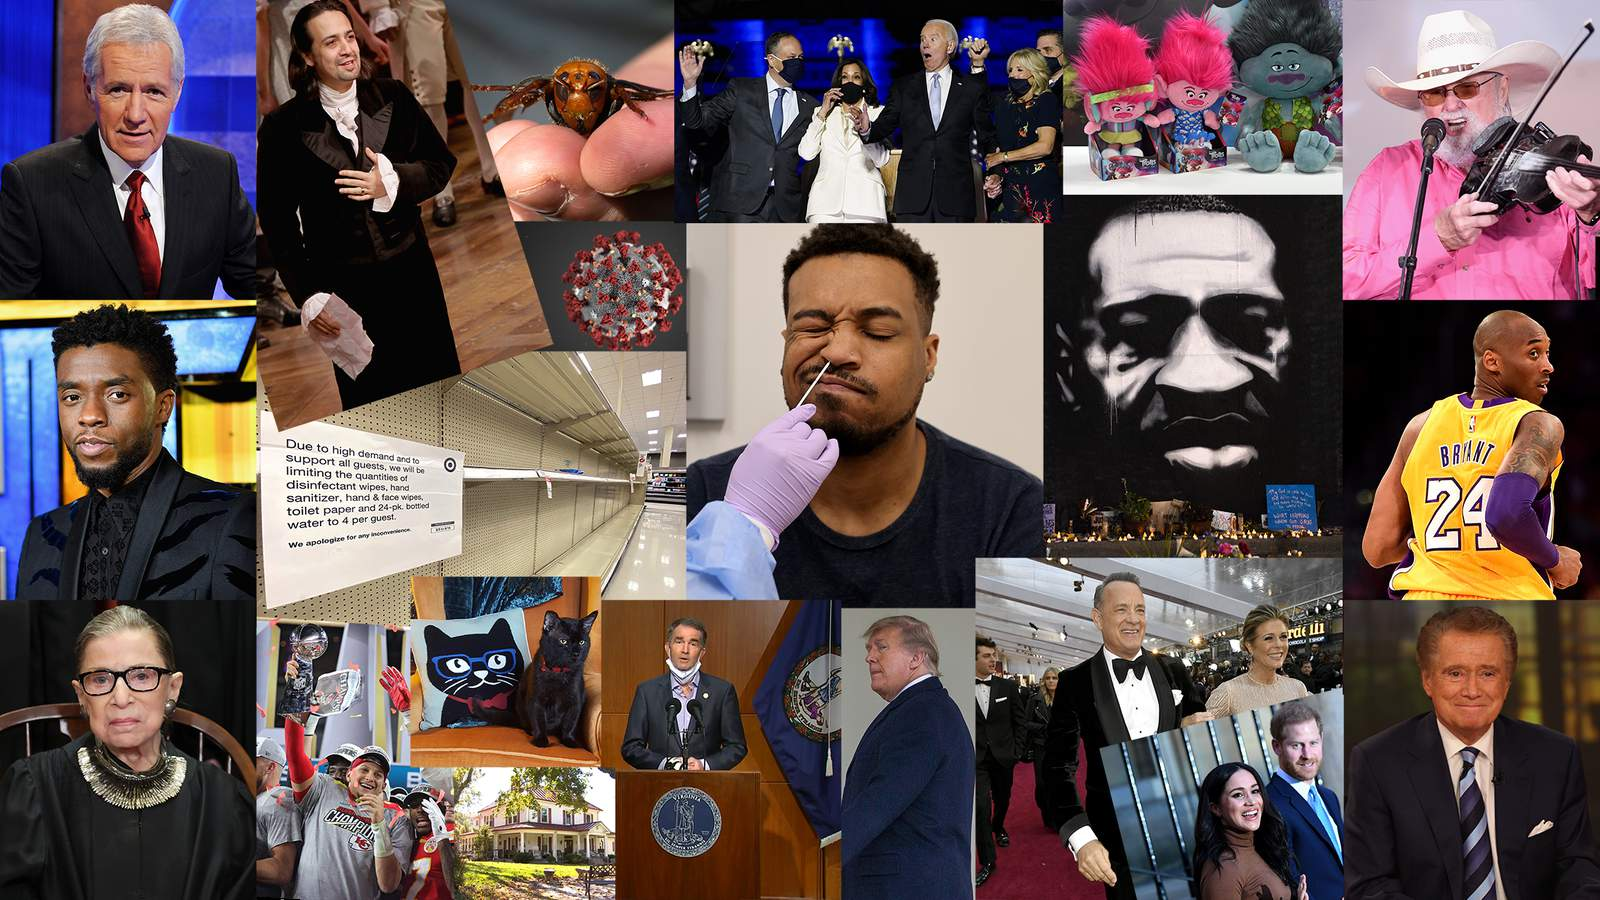 www.wsls.com: Here are 202 things that happened in 2020